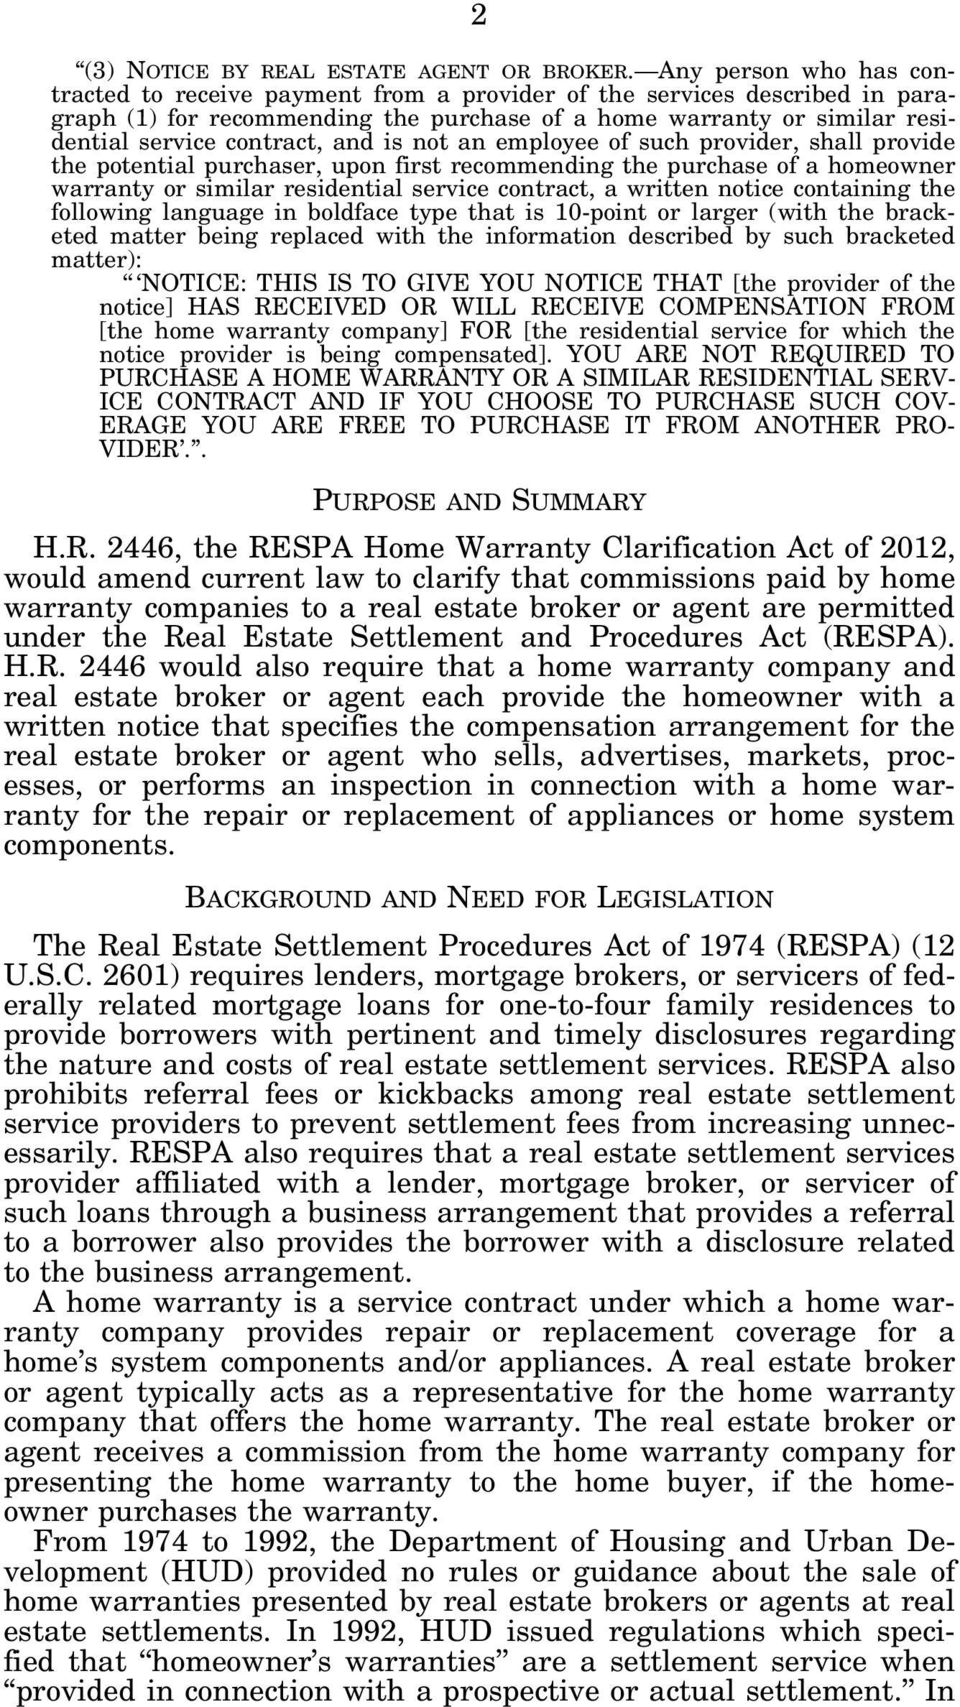 and is not an employee of such provider, shall provide the potential purchaser, upon first recommending the purchase of a homeowner warranty or similar residential service contract, a written notice